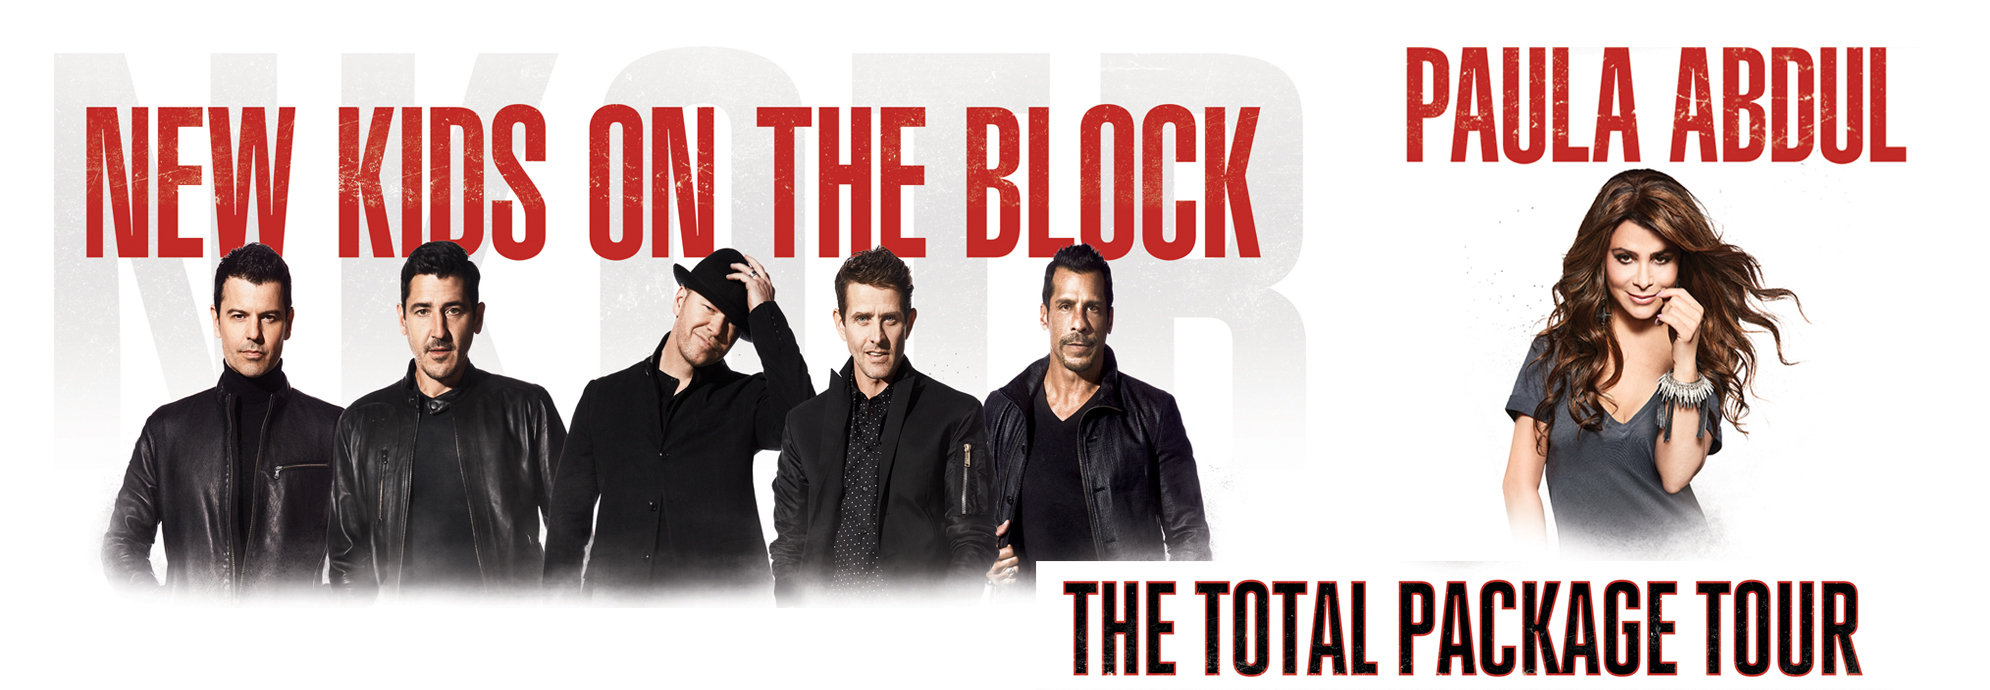 The Total Package Tour: New Kids on the Block with Paula Abdul ...